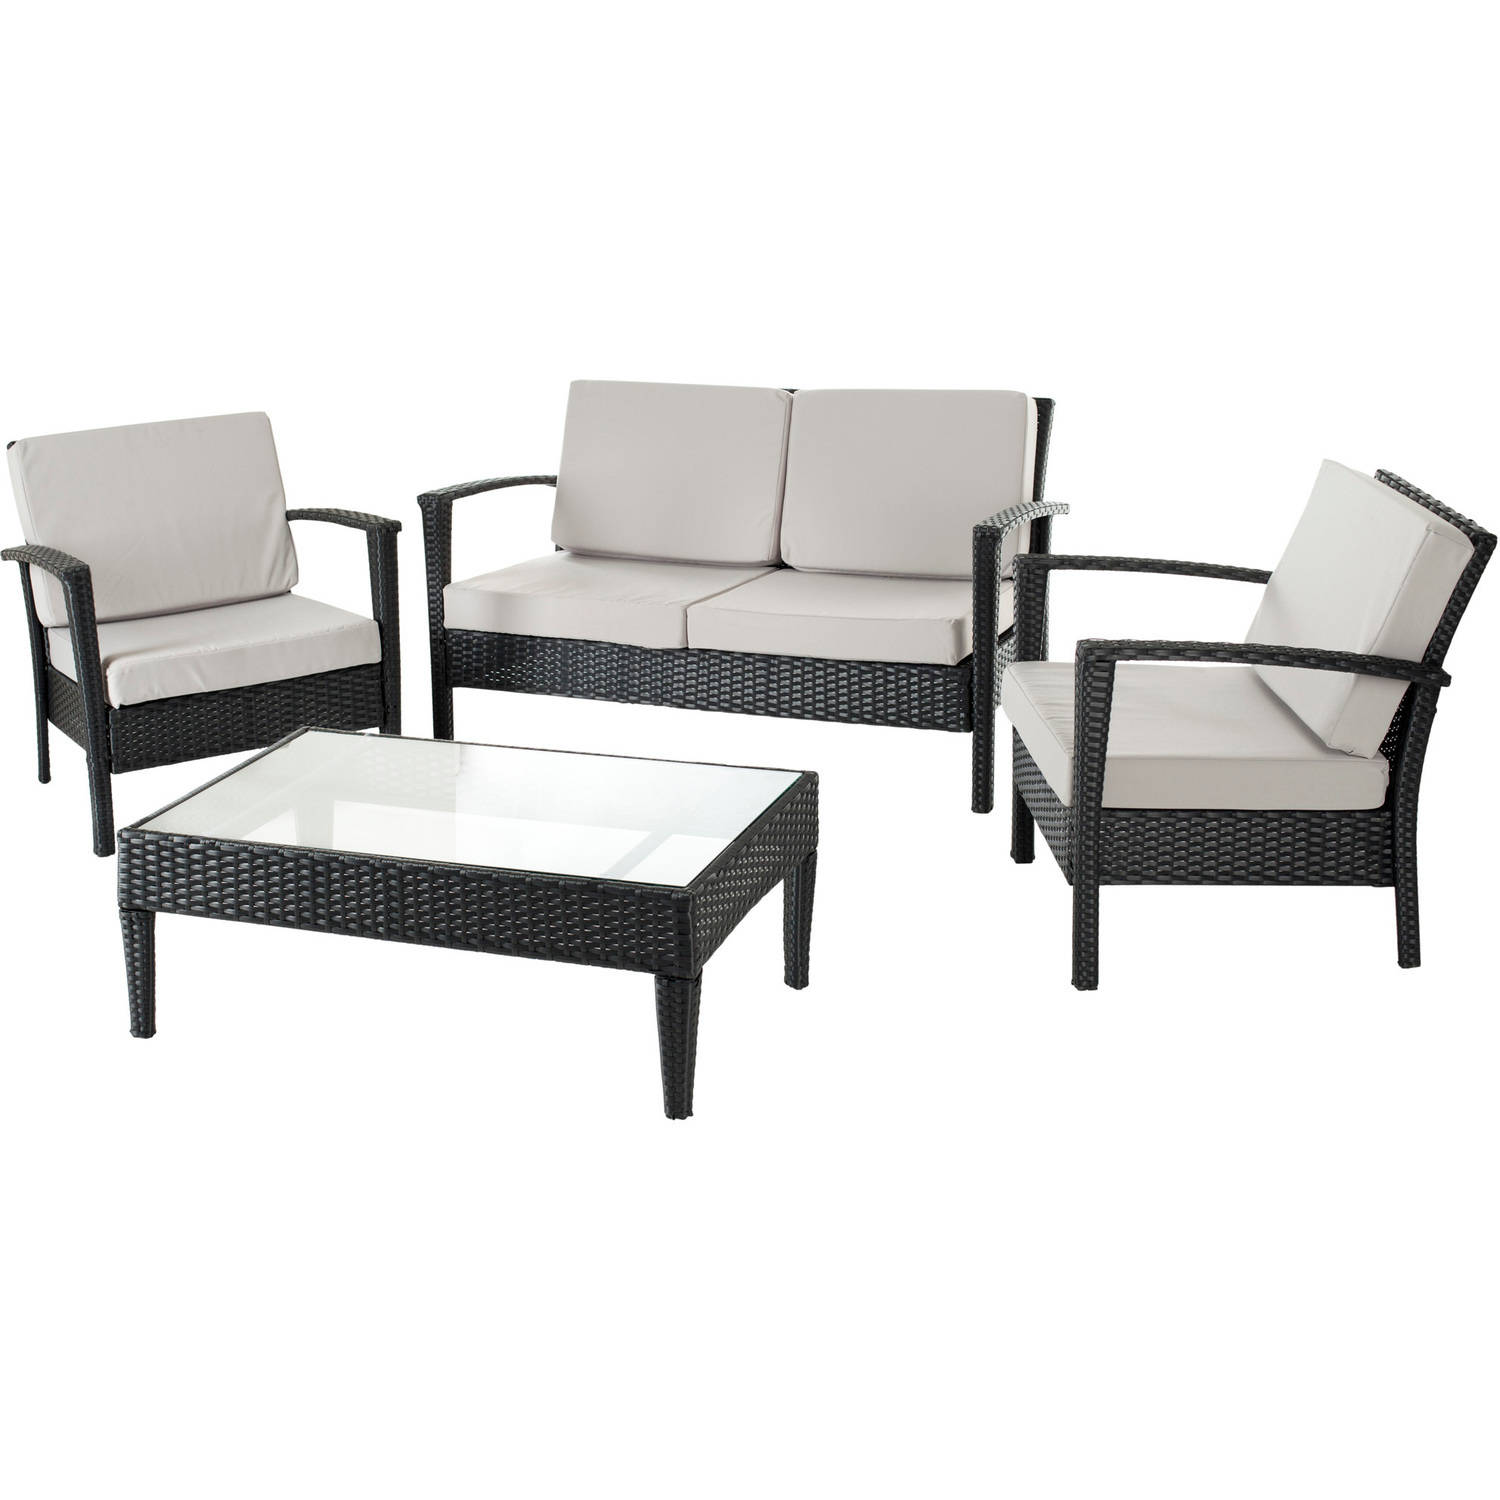 - Safavieh Piscataway 4-Piece Wicker Outdoor Set - Walmart.com